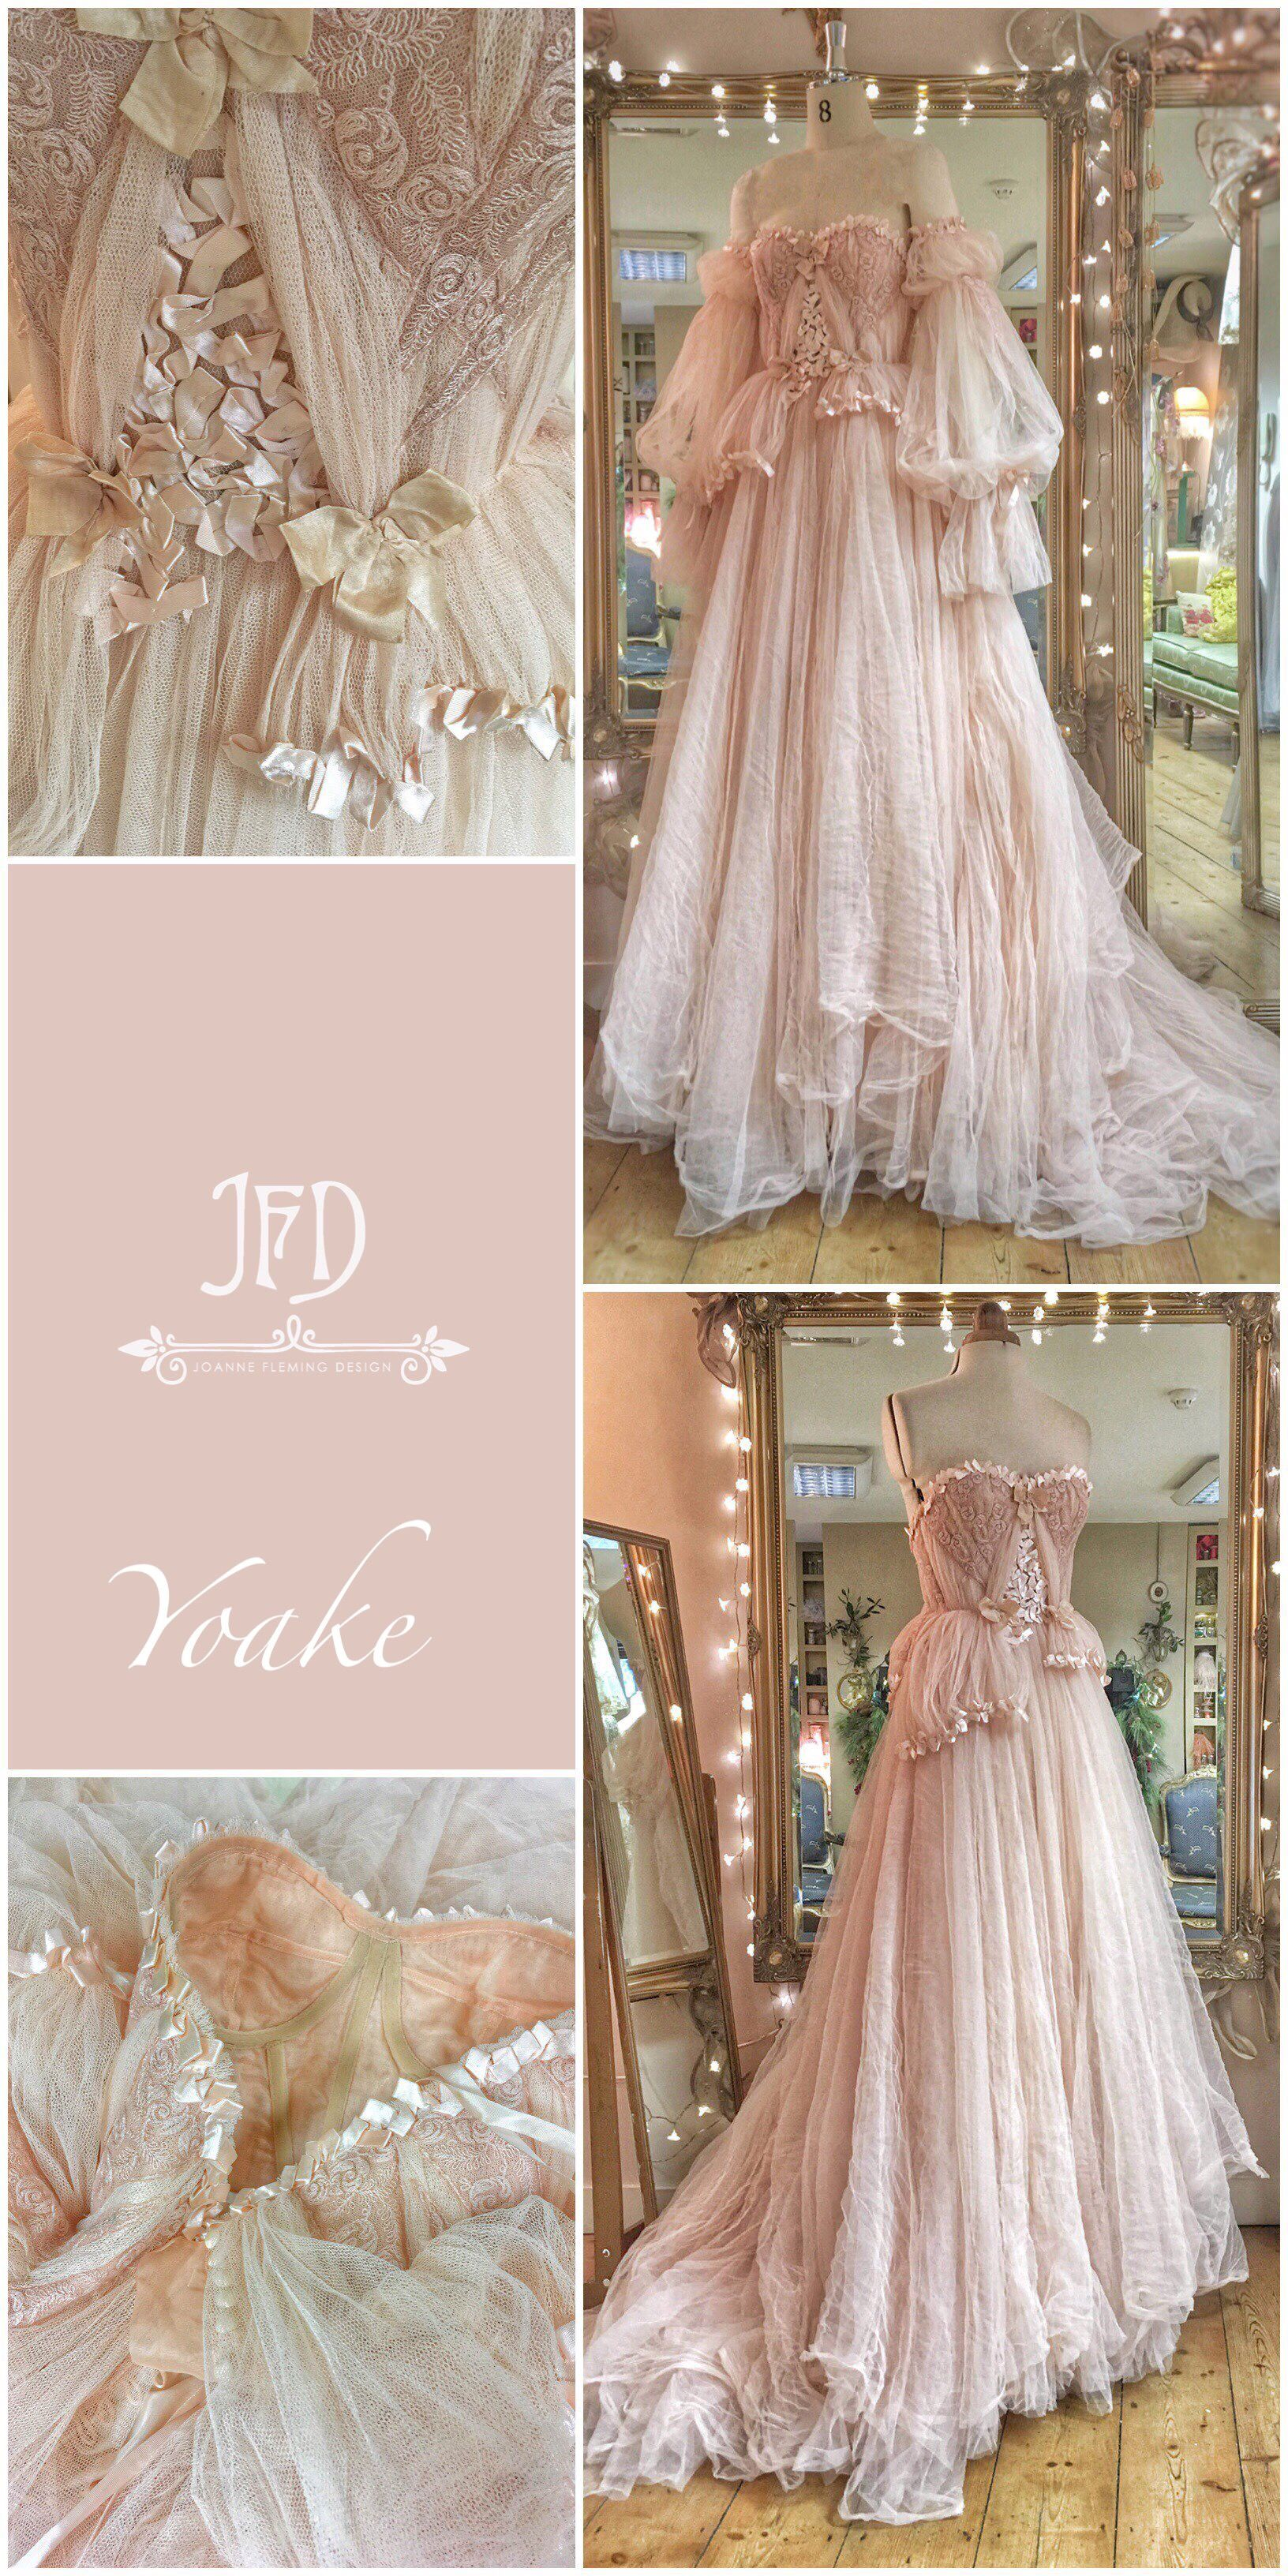 d8a68d31b4f Yoake blush tulle and lace wedding dress with ribbon details by Joanne  Fleming Design